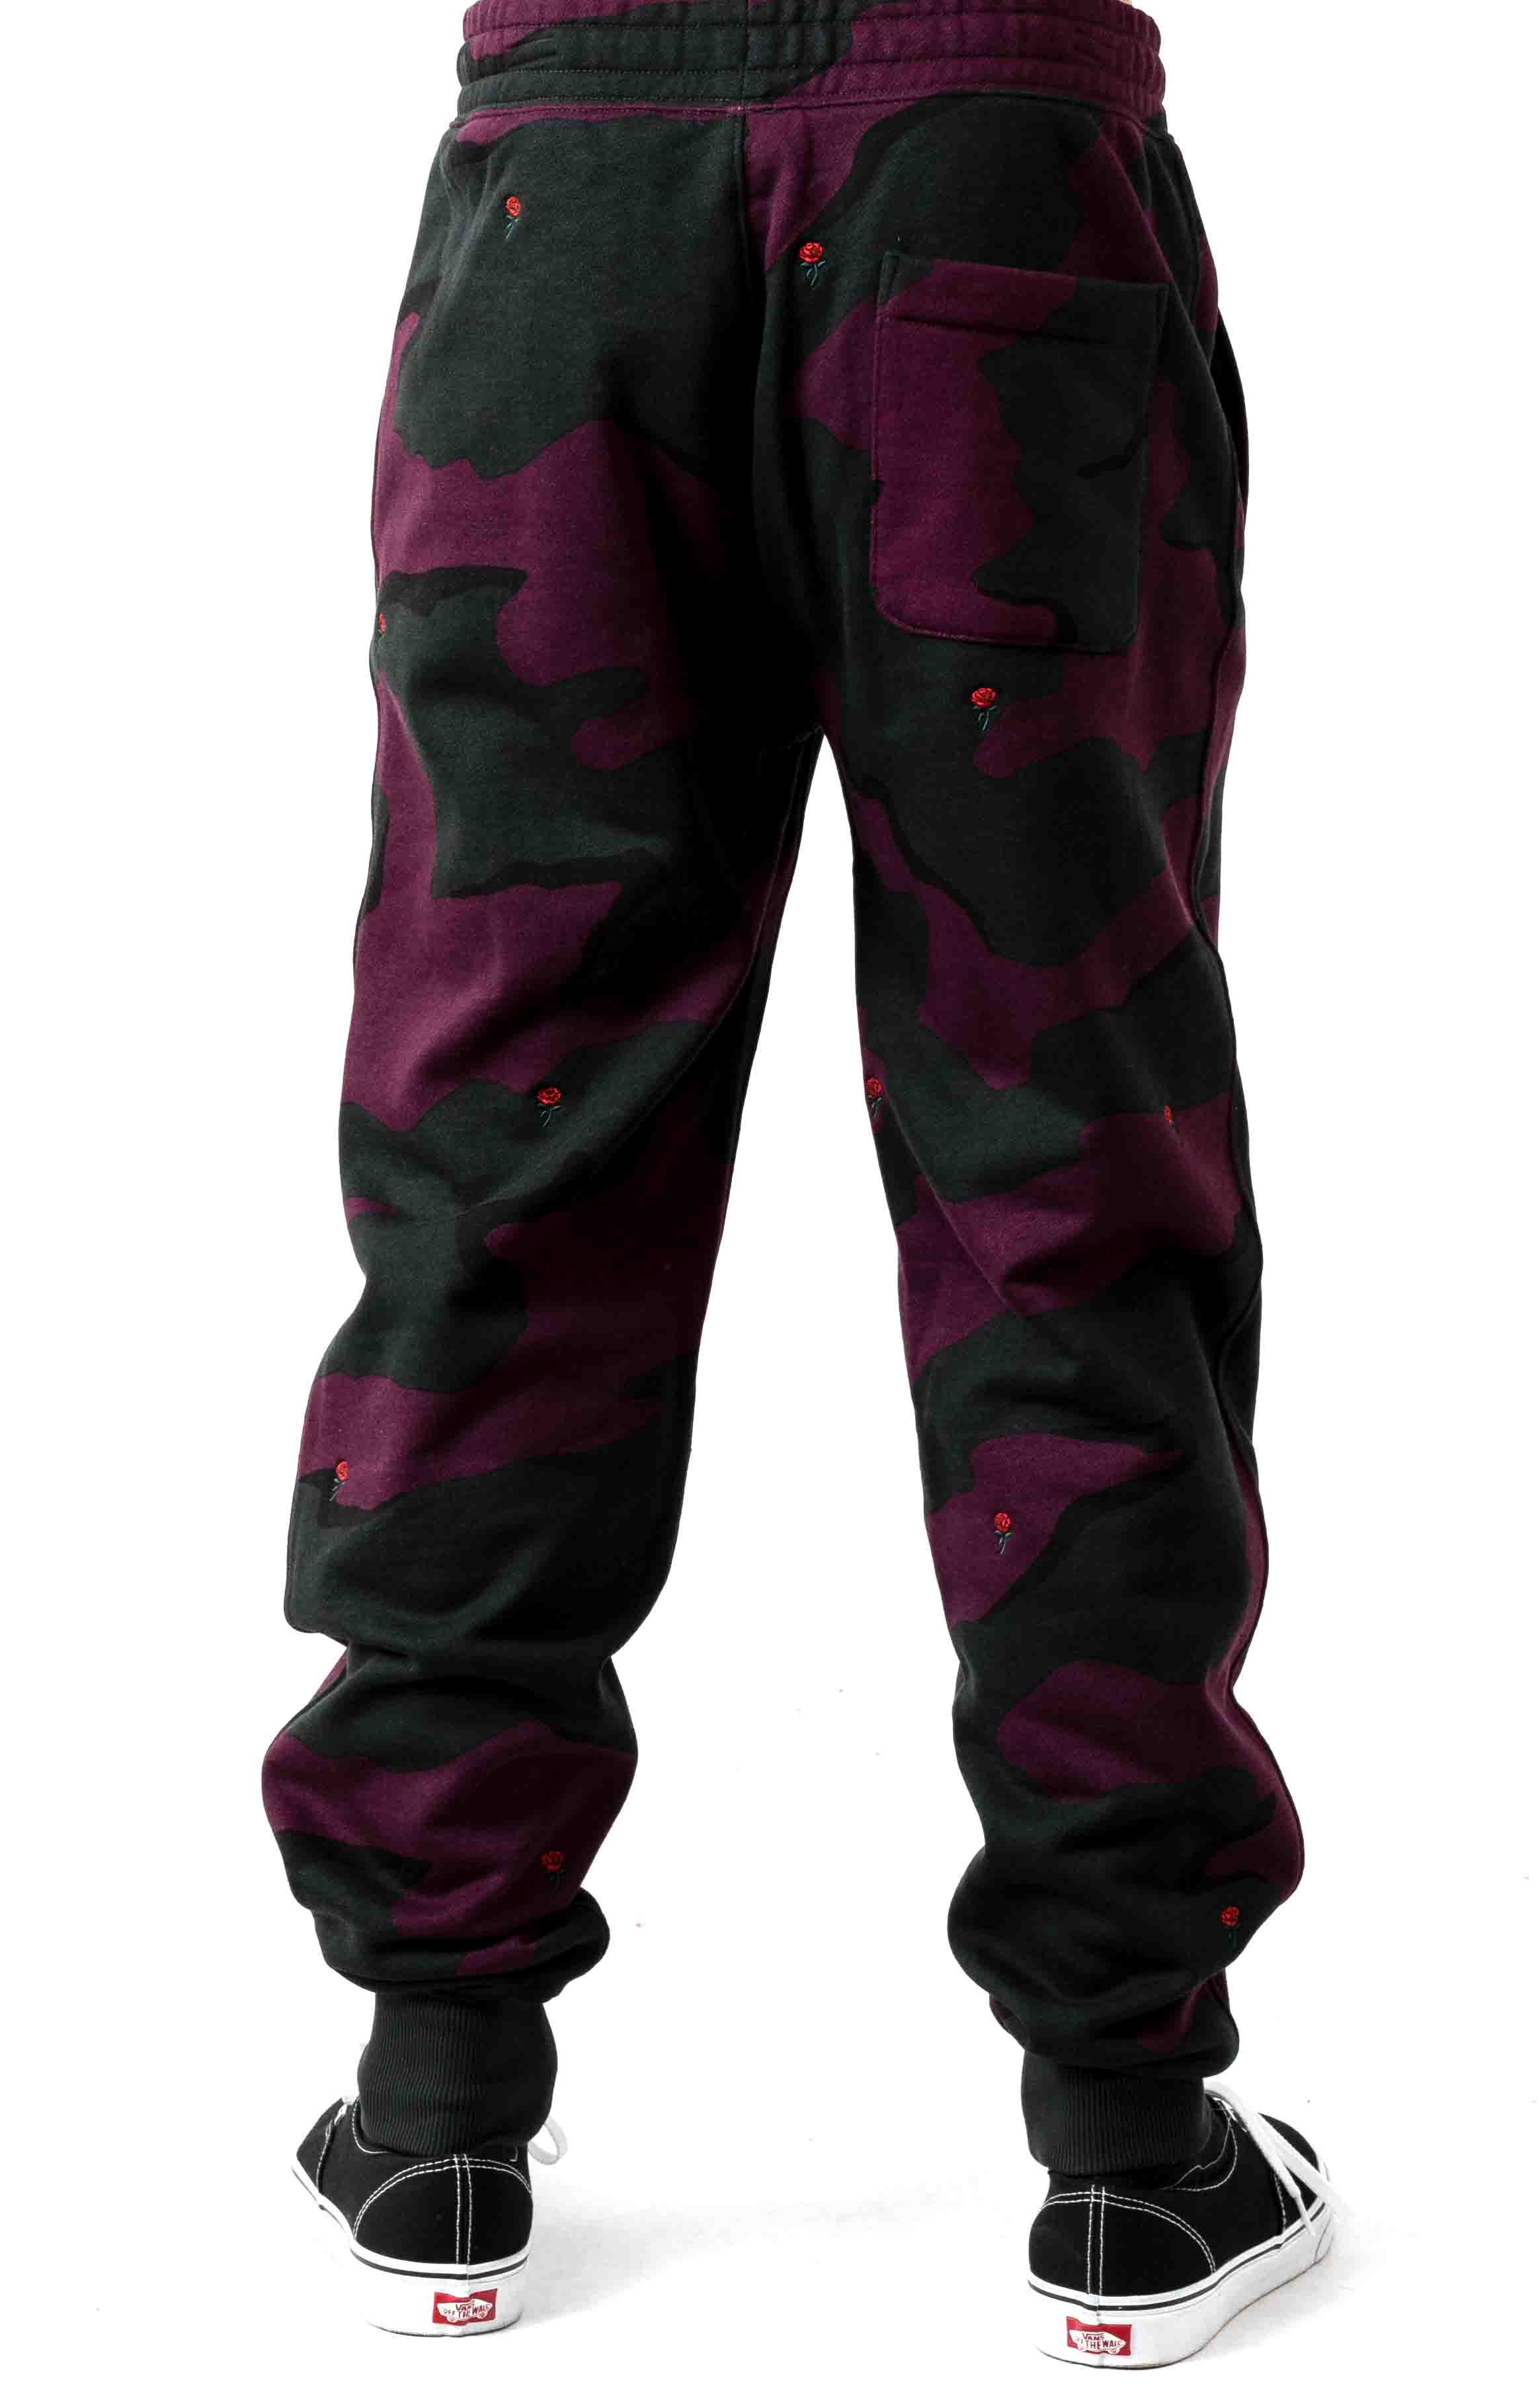 Live Rose Embroidered Camo Sweatpant - Green/White  3